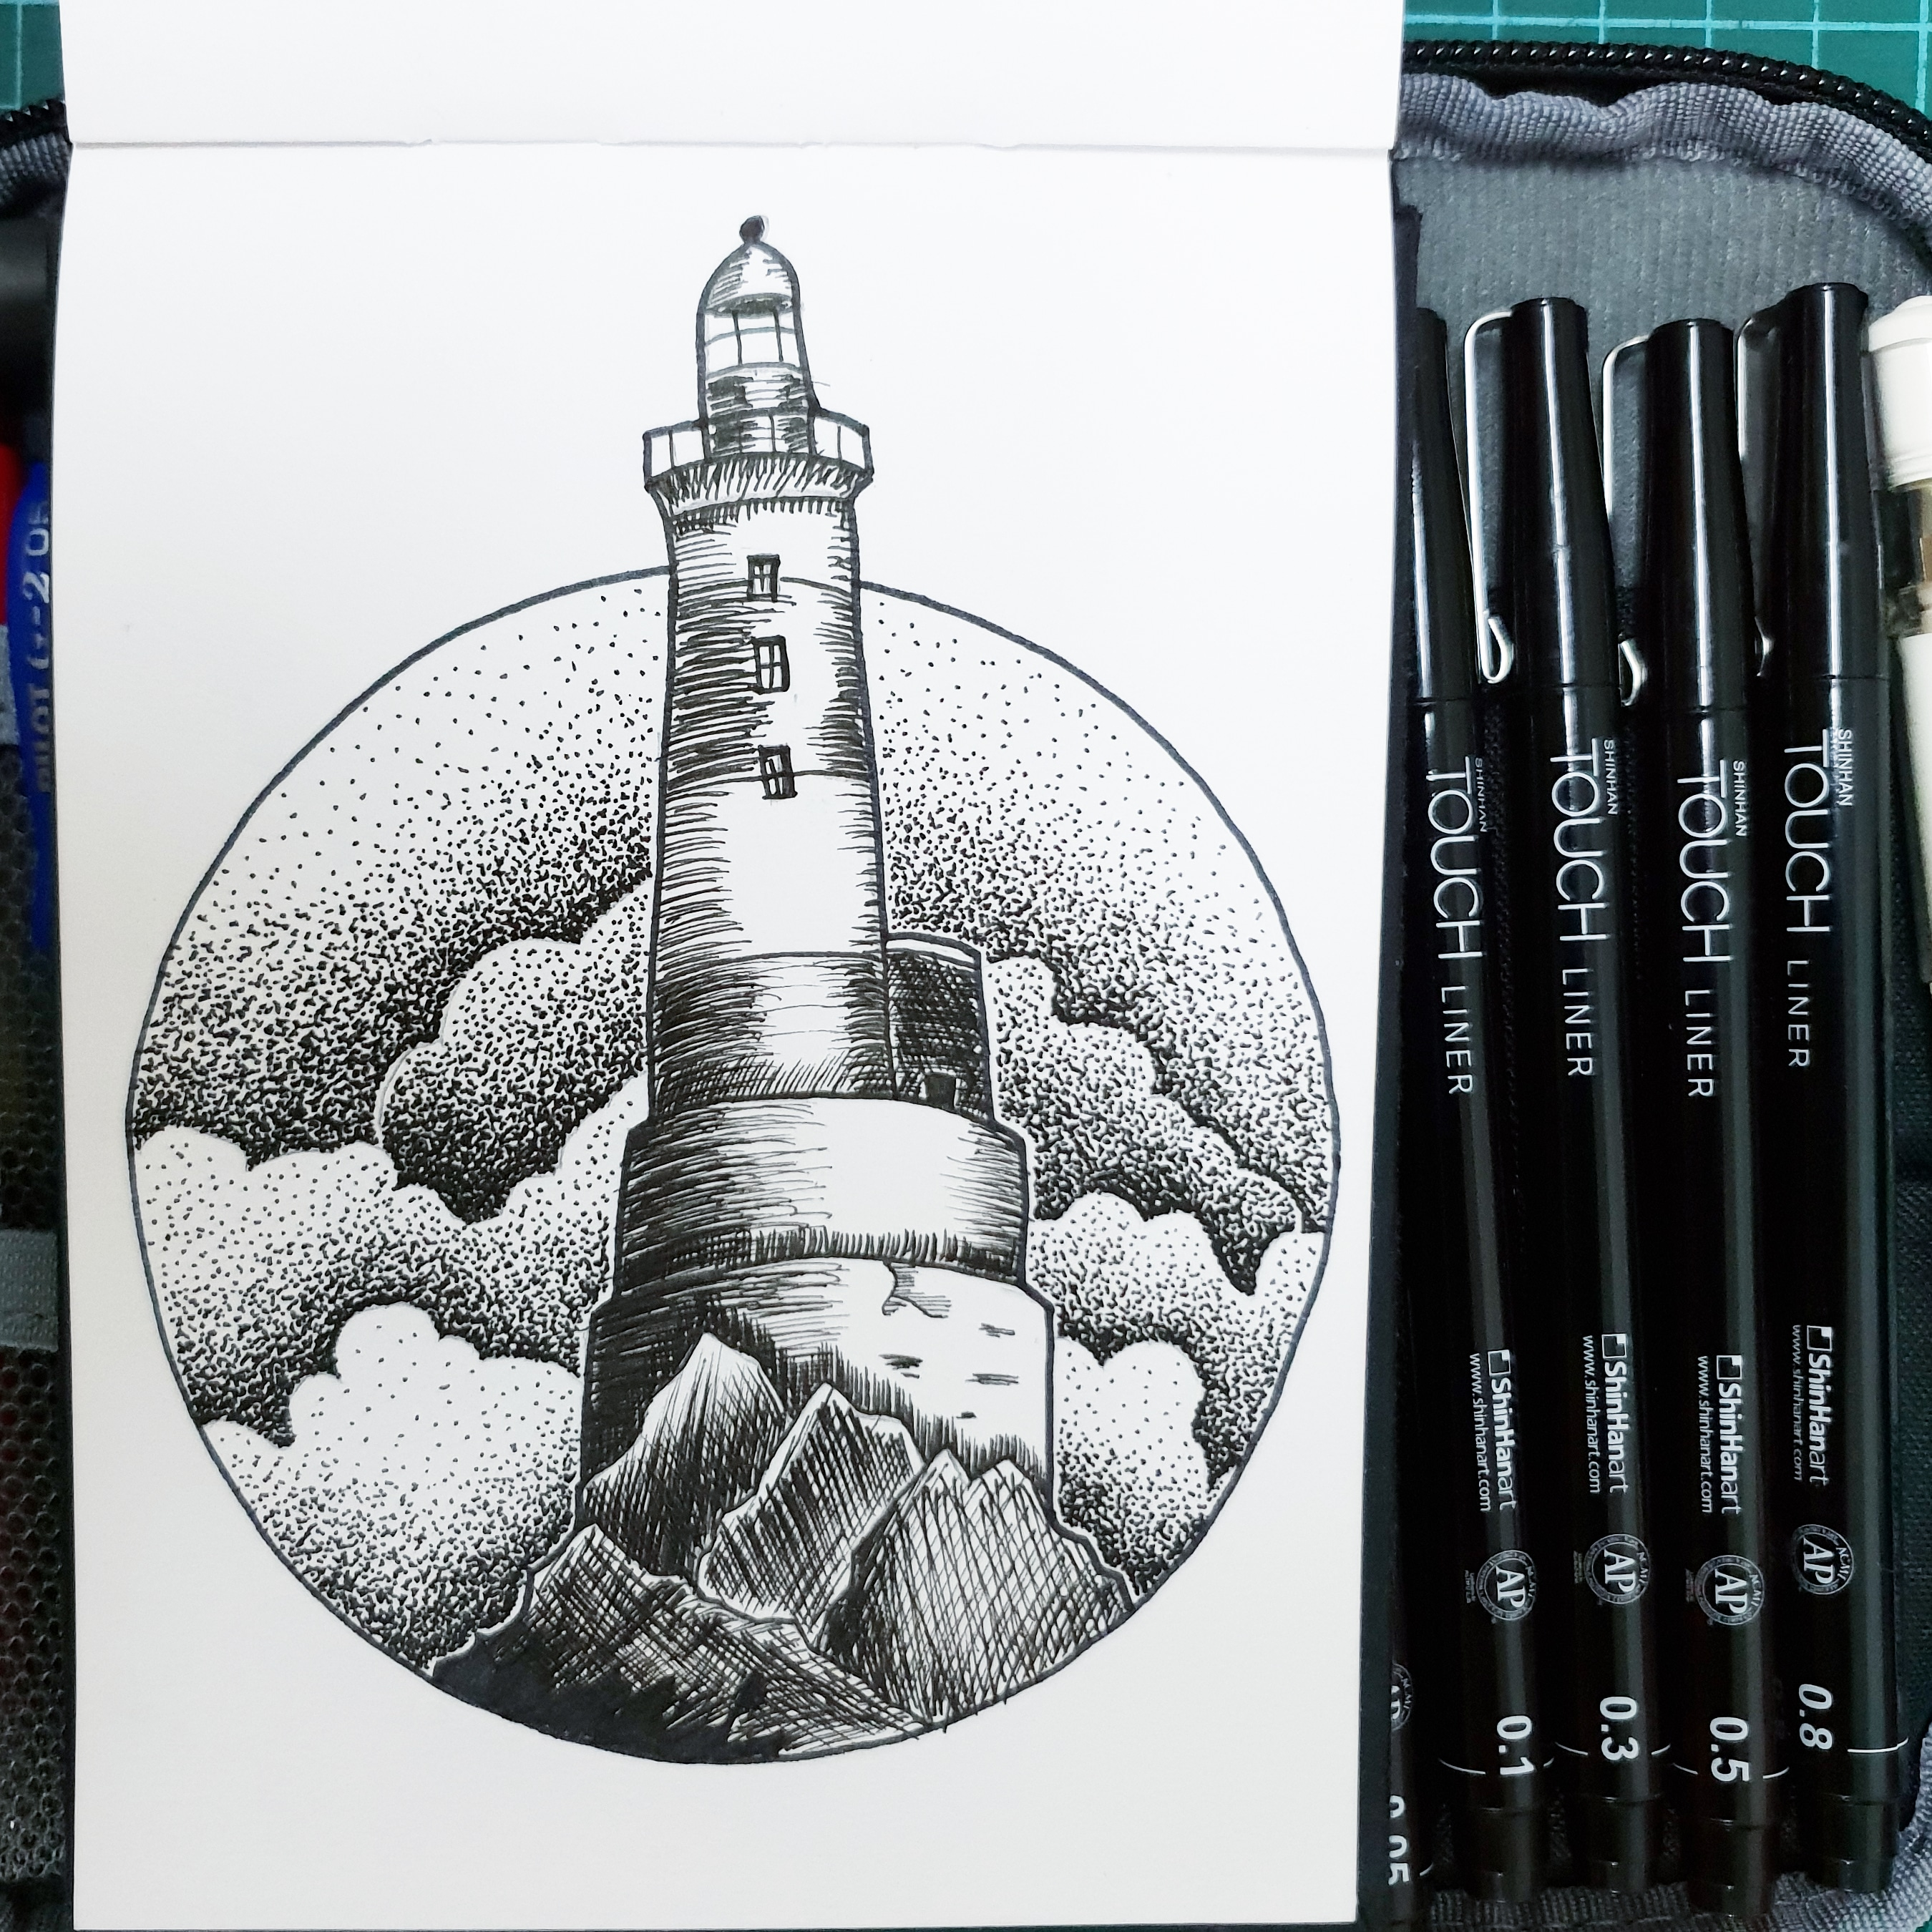 LighthouseIllustration